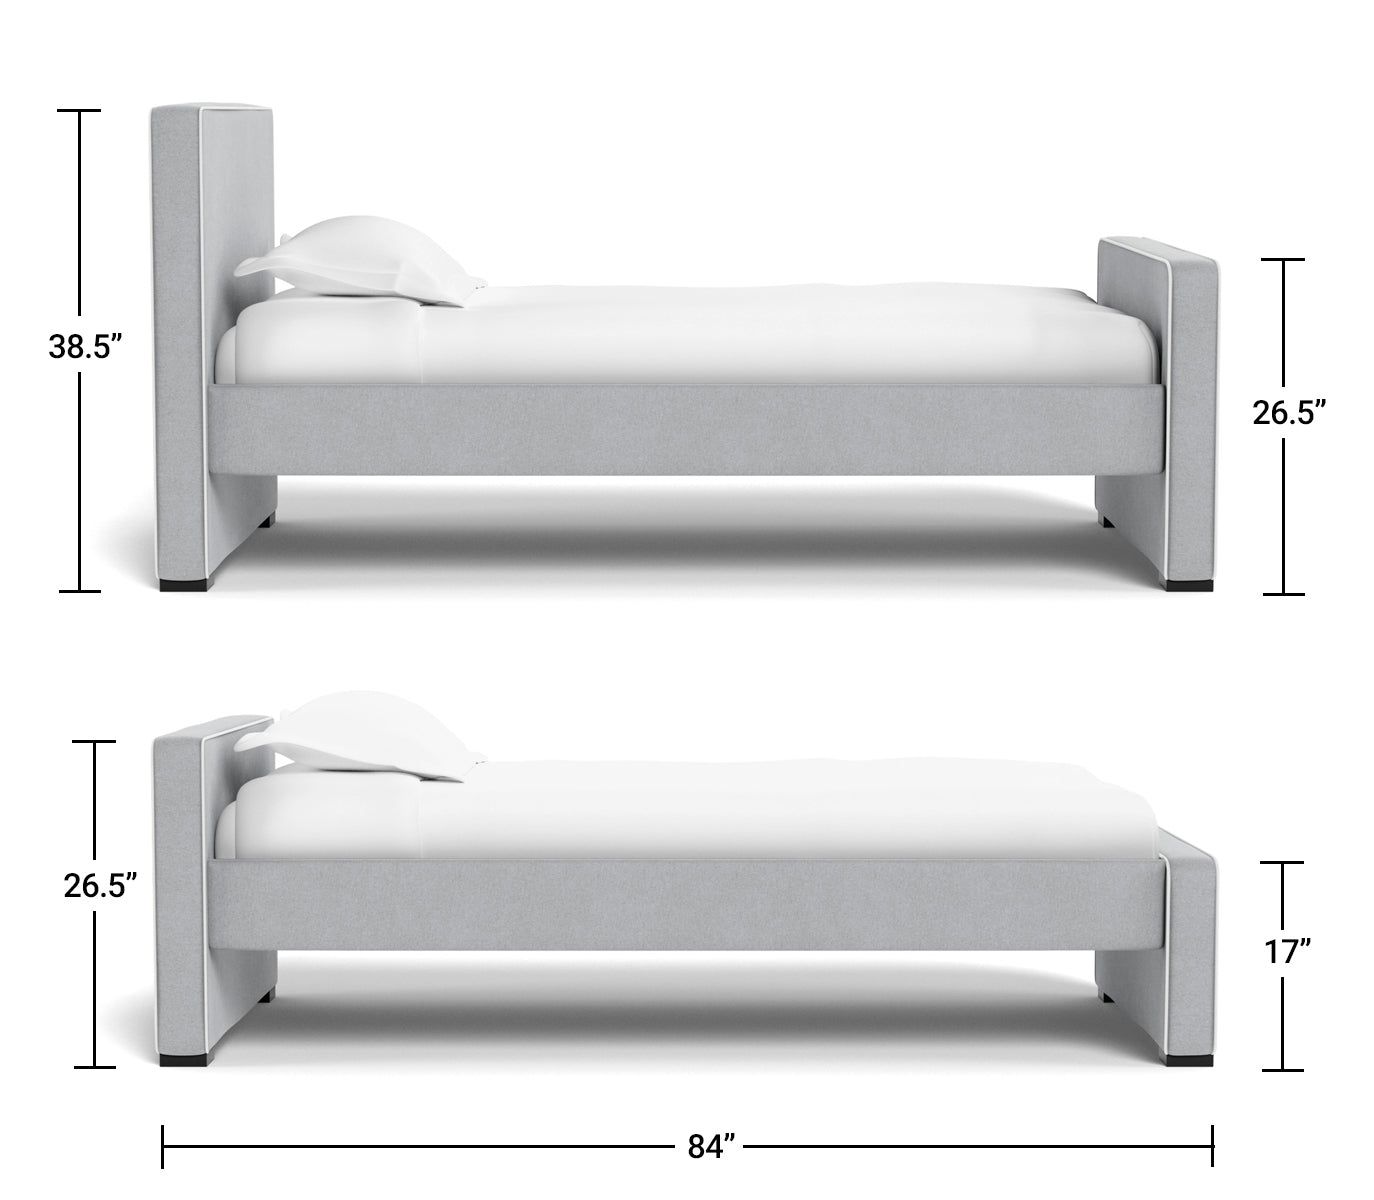 Modern Dorma Bed Twin Dimensions Side View